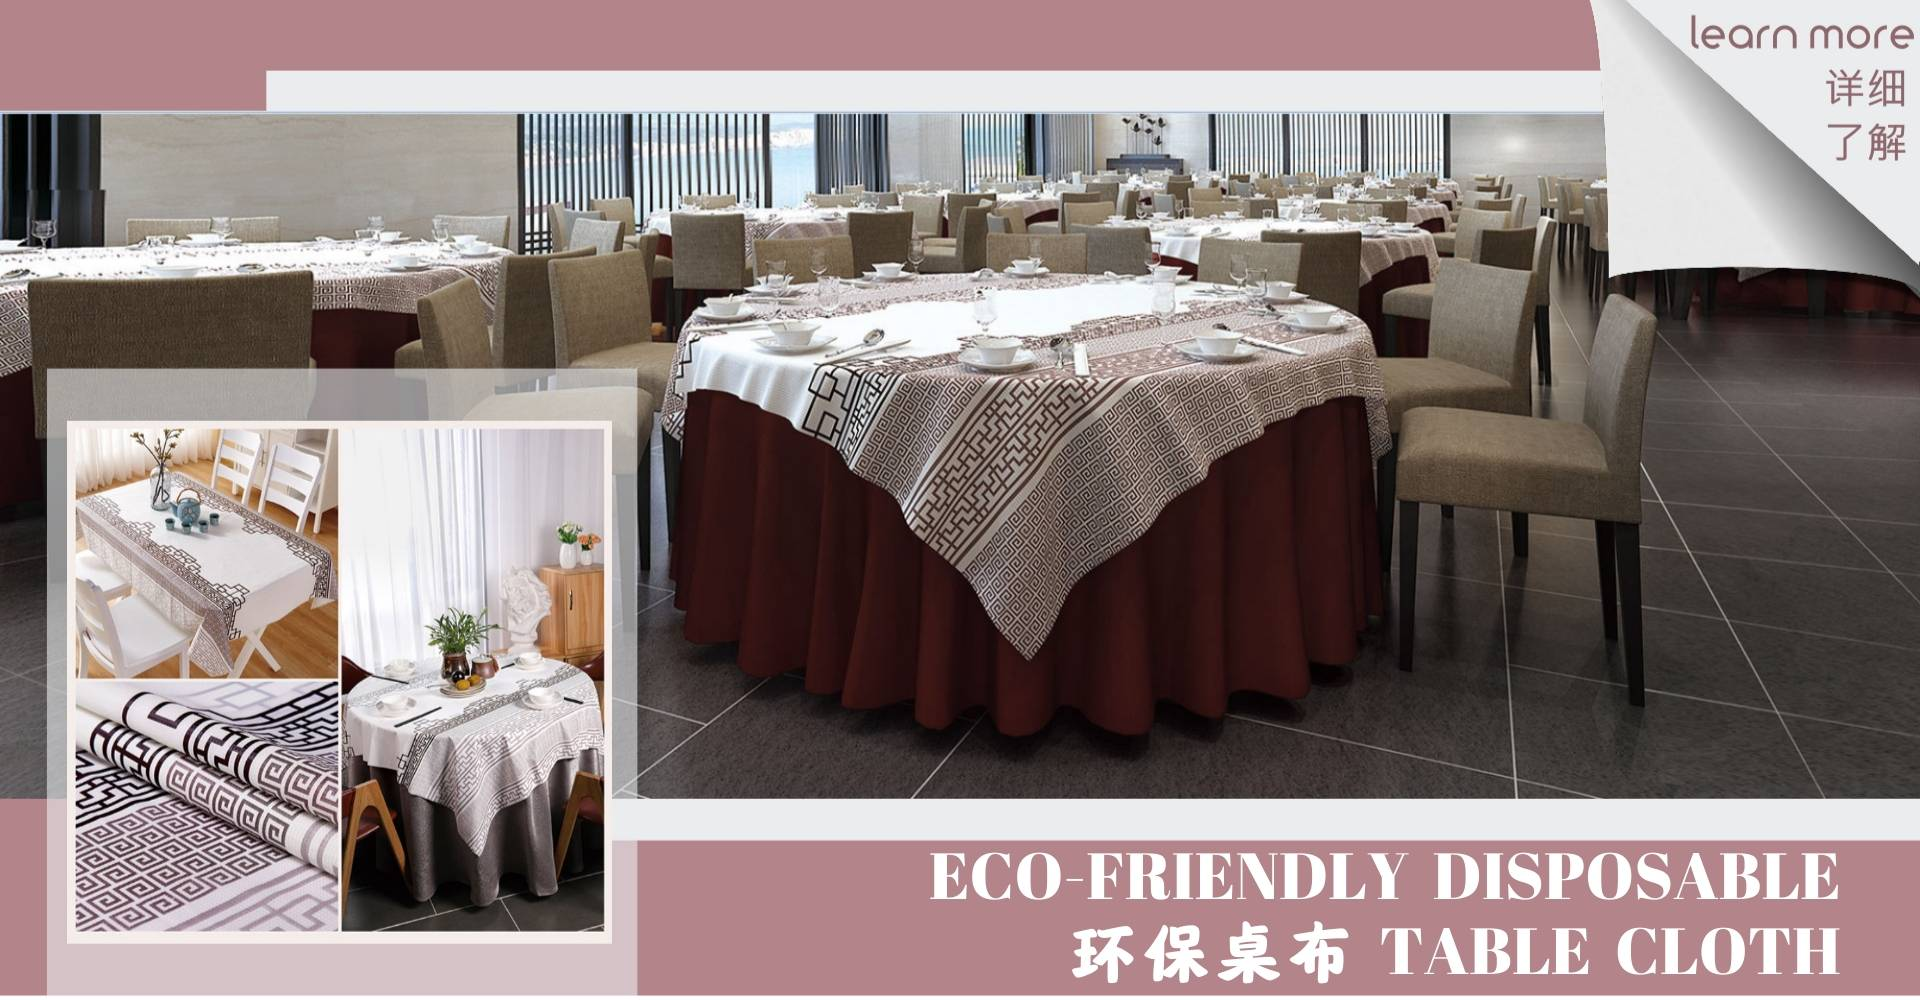 Eco-Friendly Disposable Table Cloth